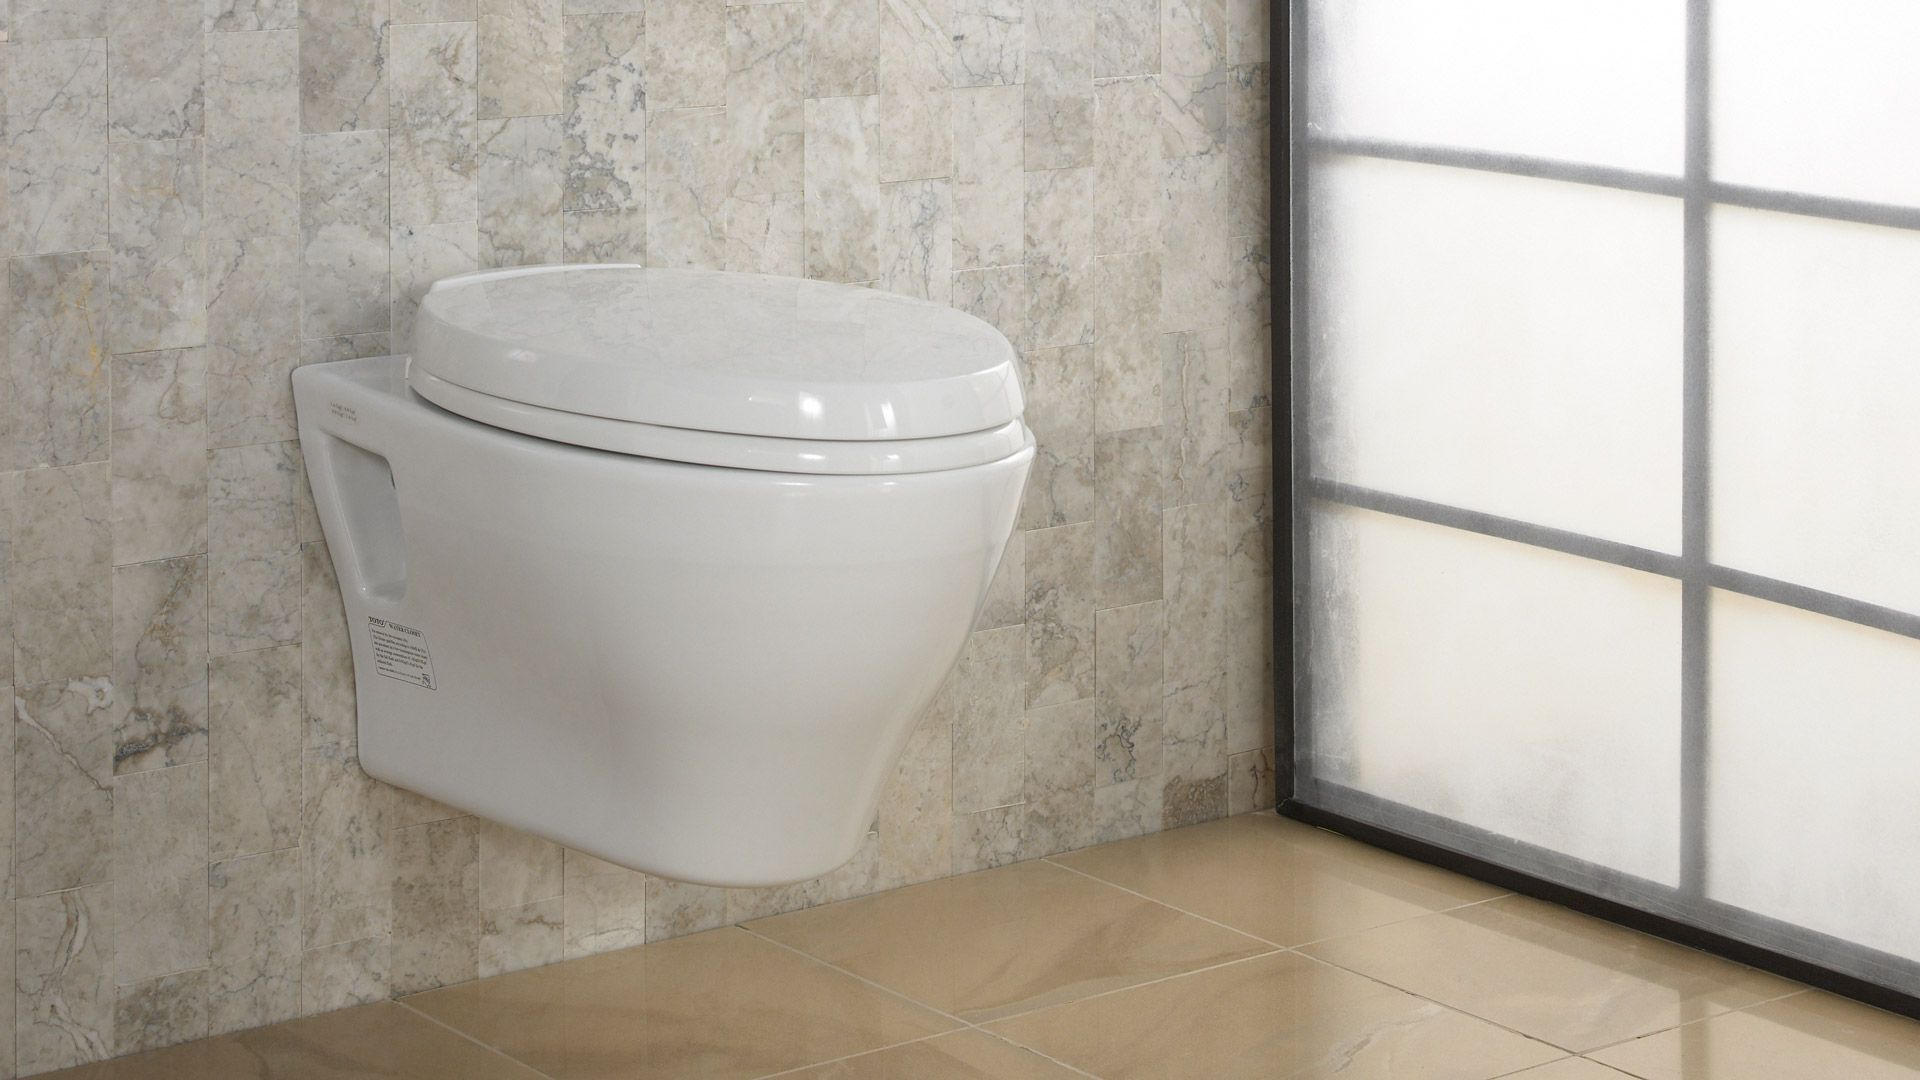 Aquia WallHung DualFlush Toilet  GPF   GPF Elongated - Elongated bowl toilet dimensions